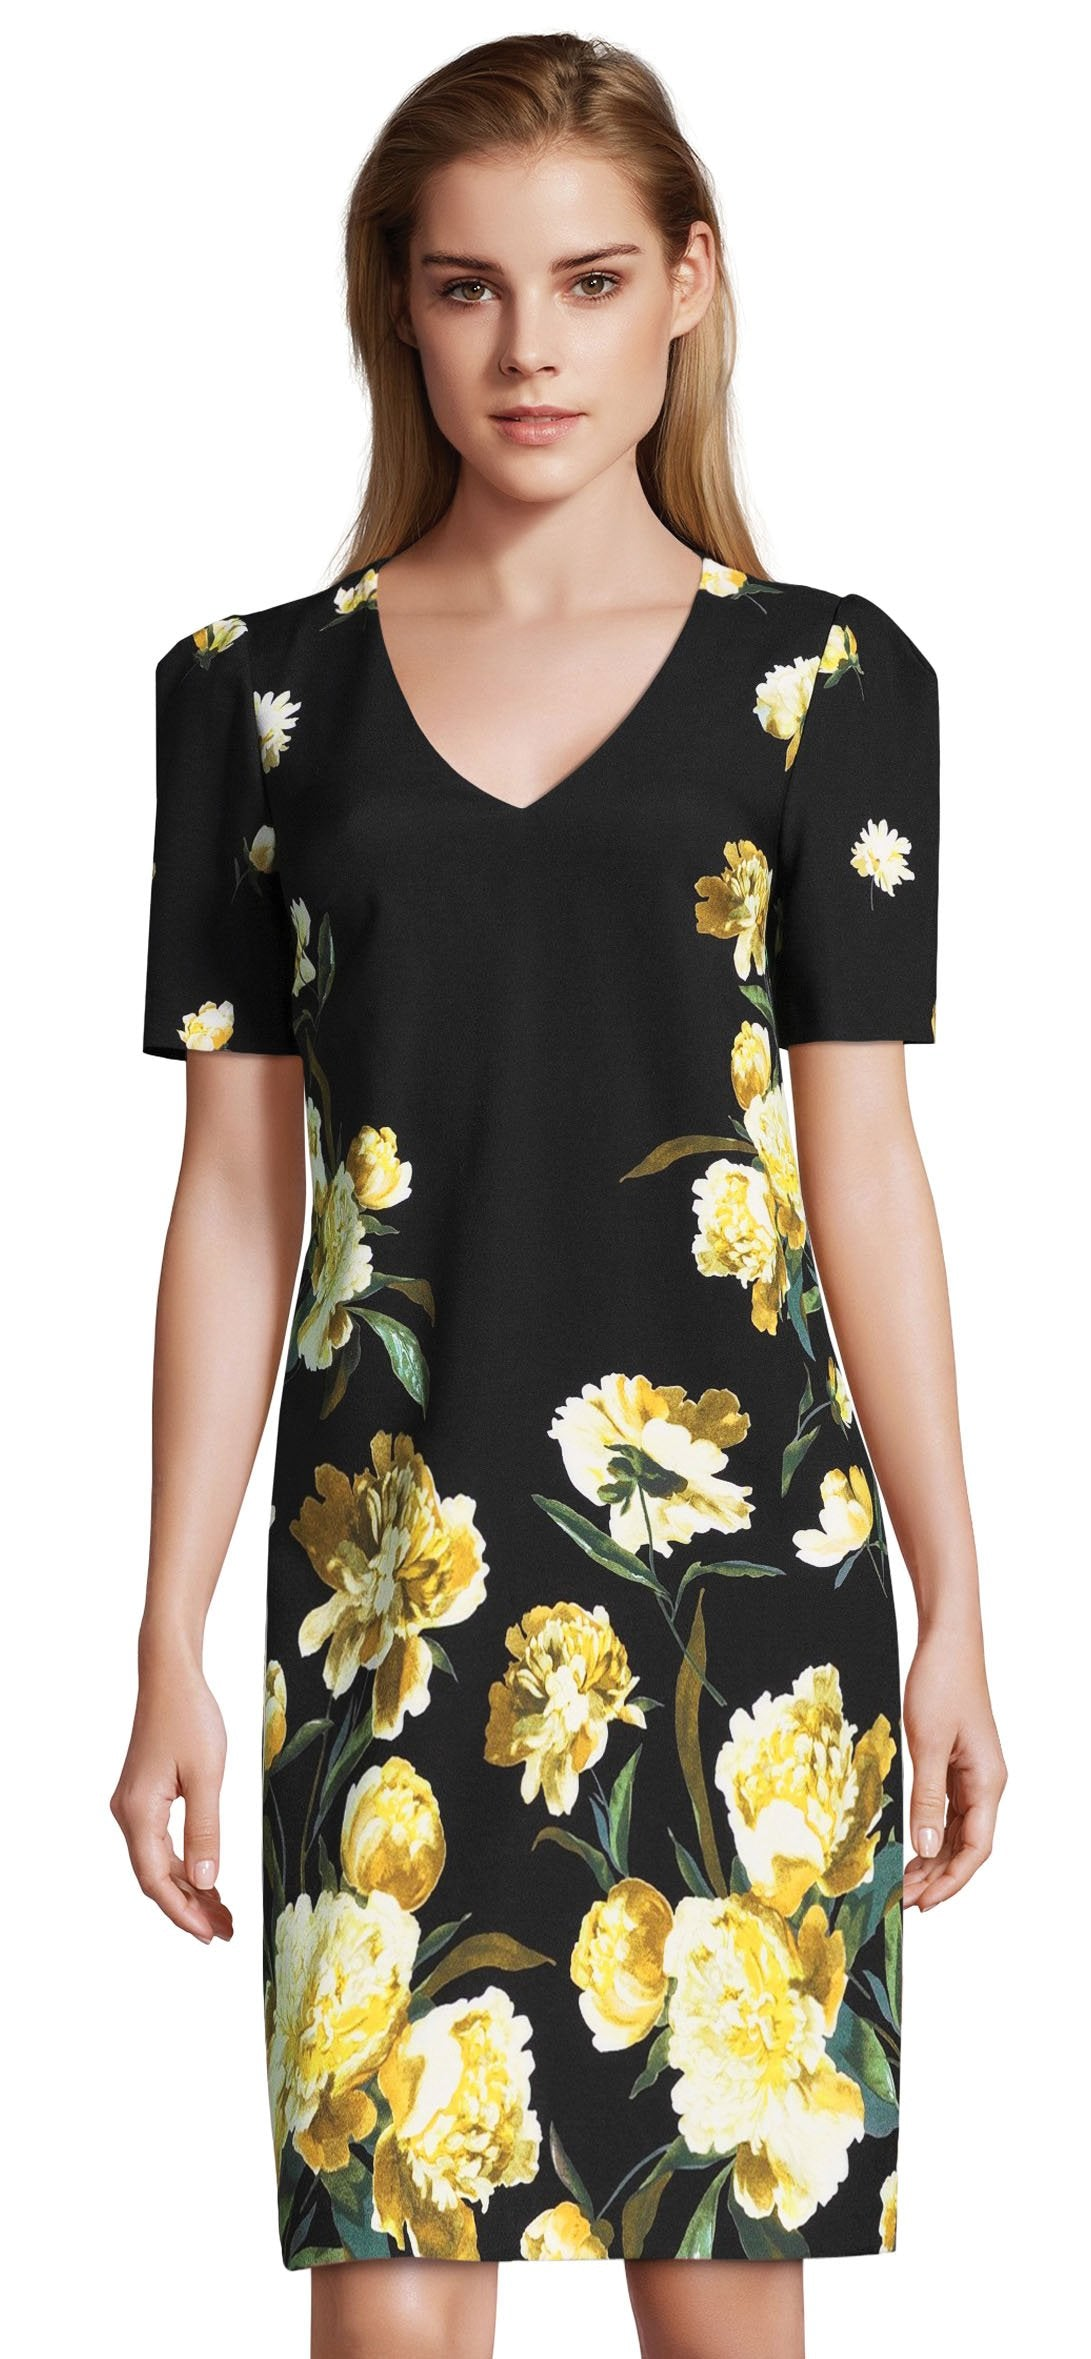 Adrianna Papell - AP1D102017 Floral V-Neck Cocktail Dress In Black and Multi-Color